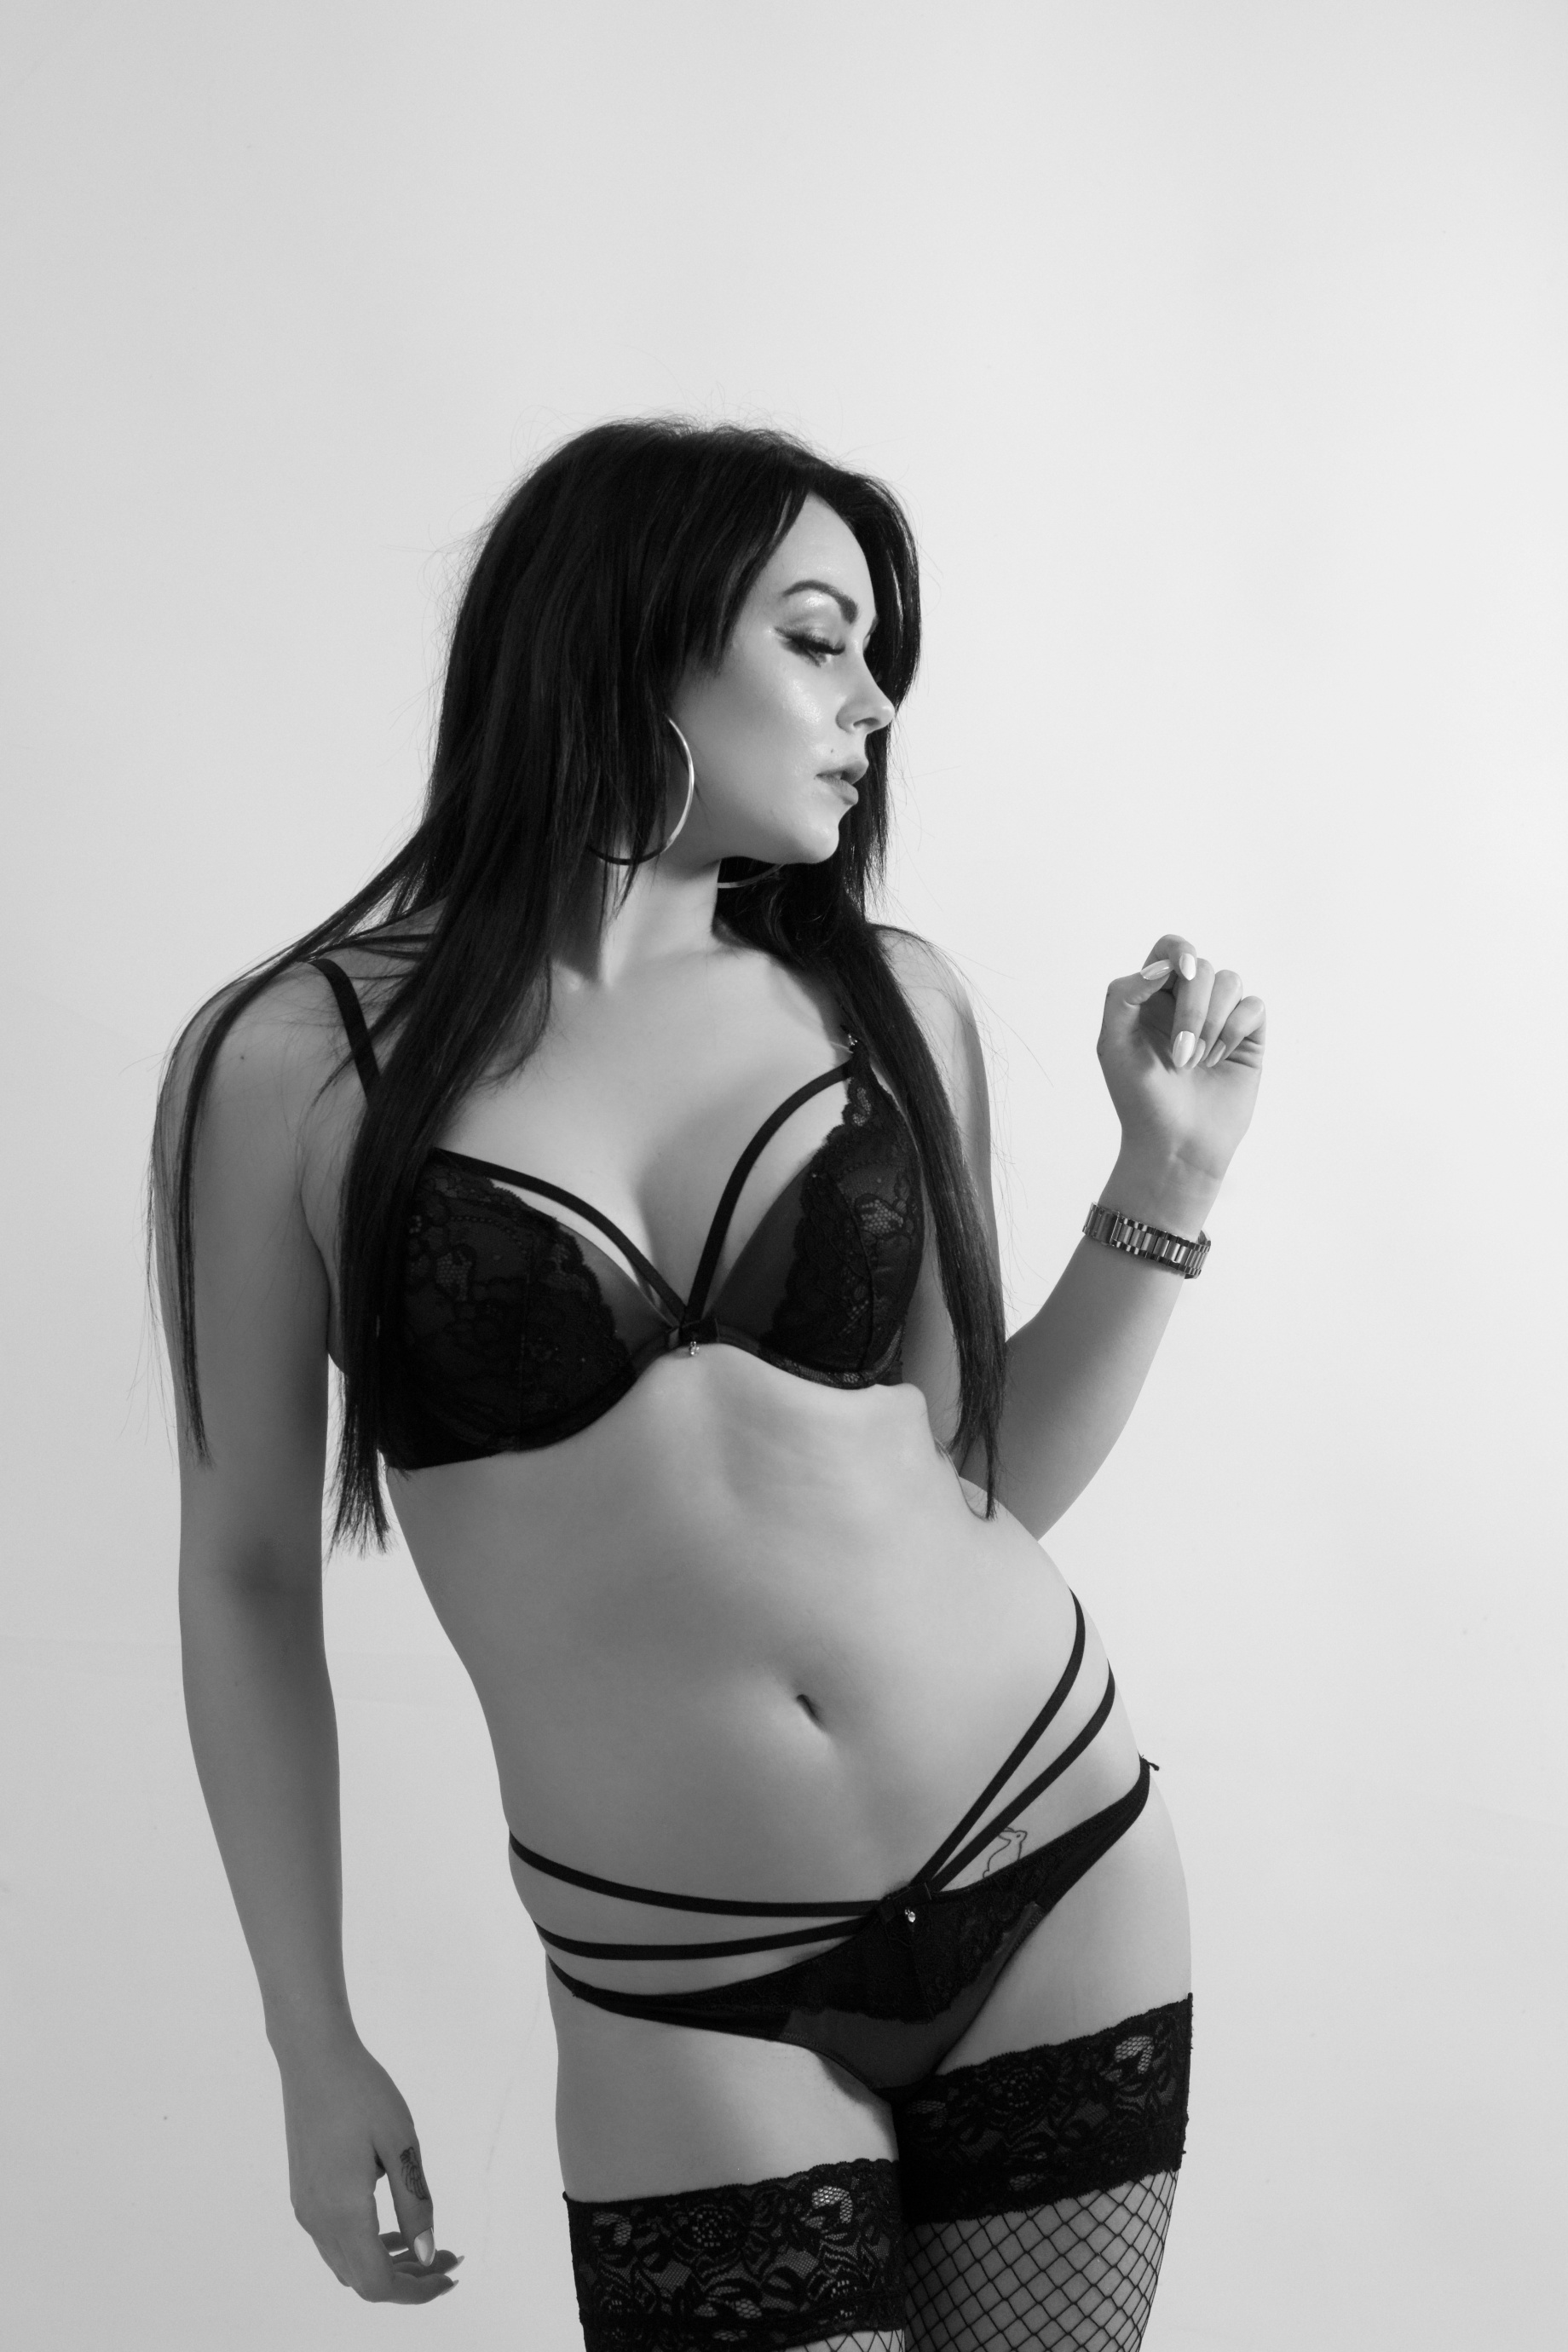 emma walsh, glamour, lingerie, black and white, cork, ireland, studio shoot